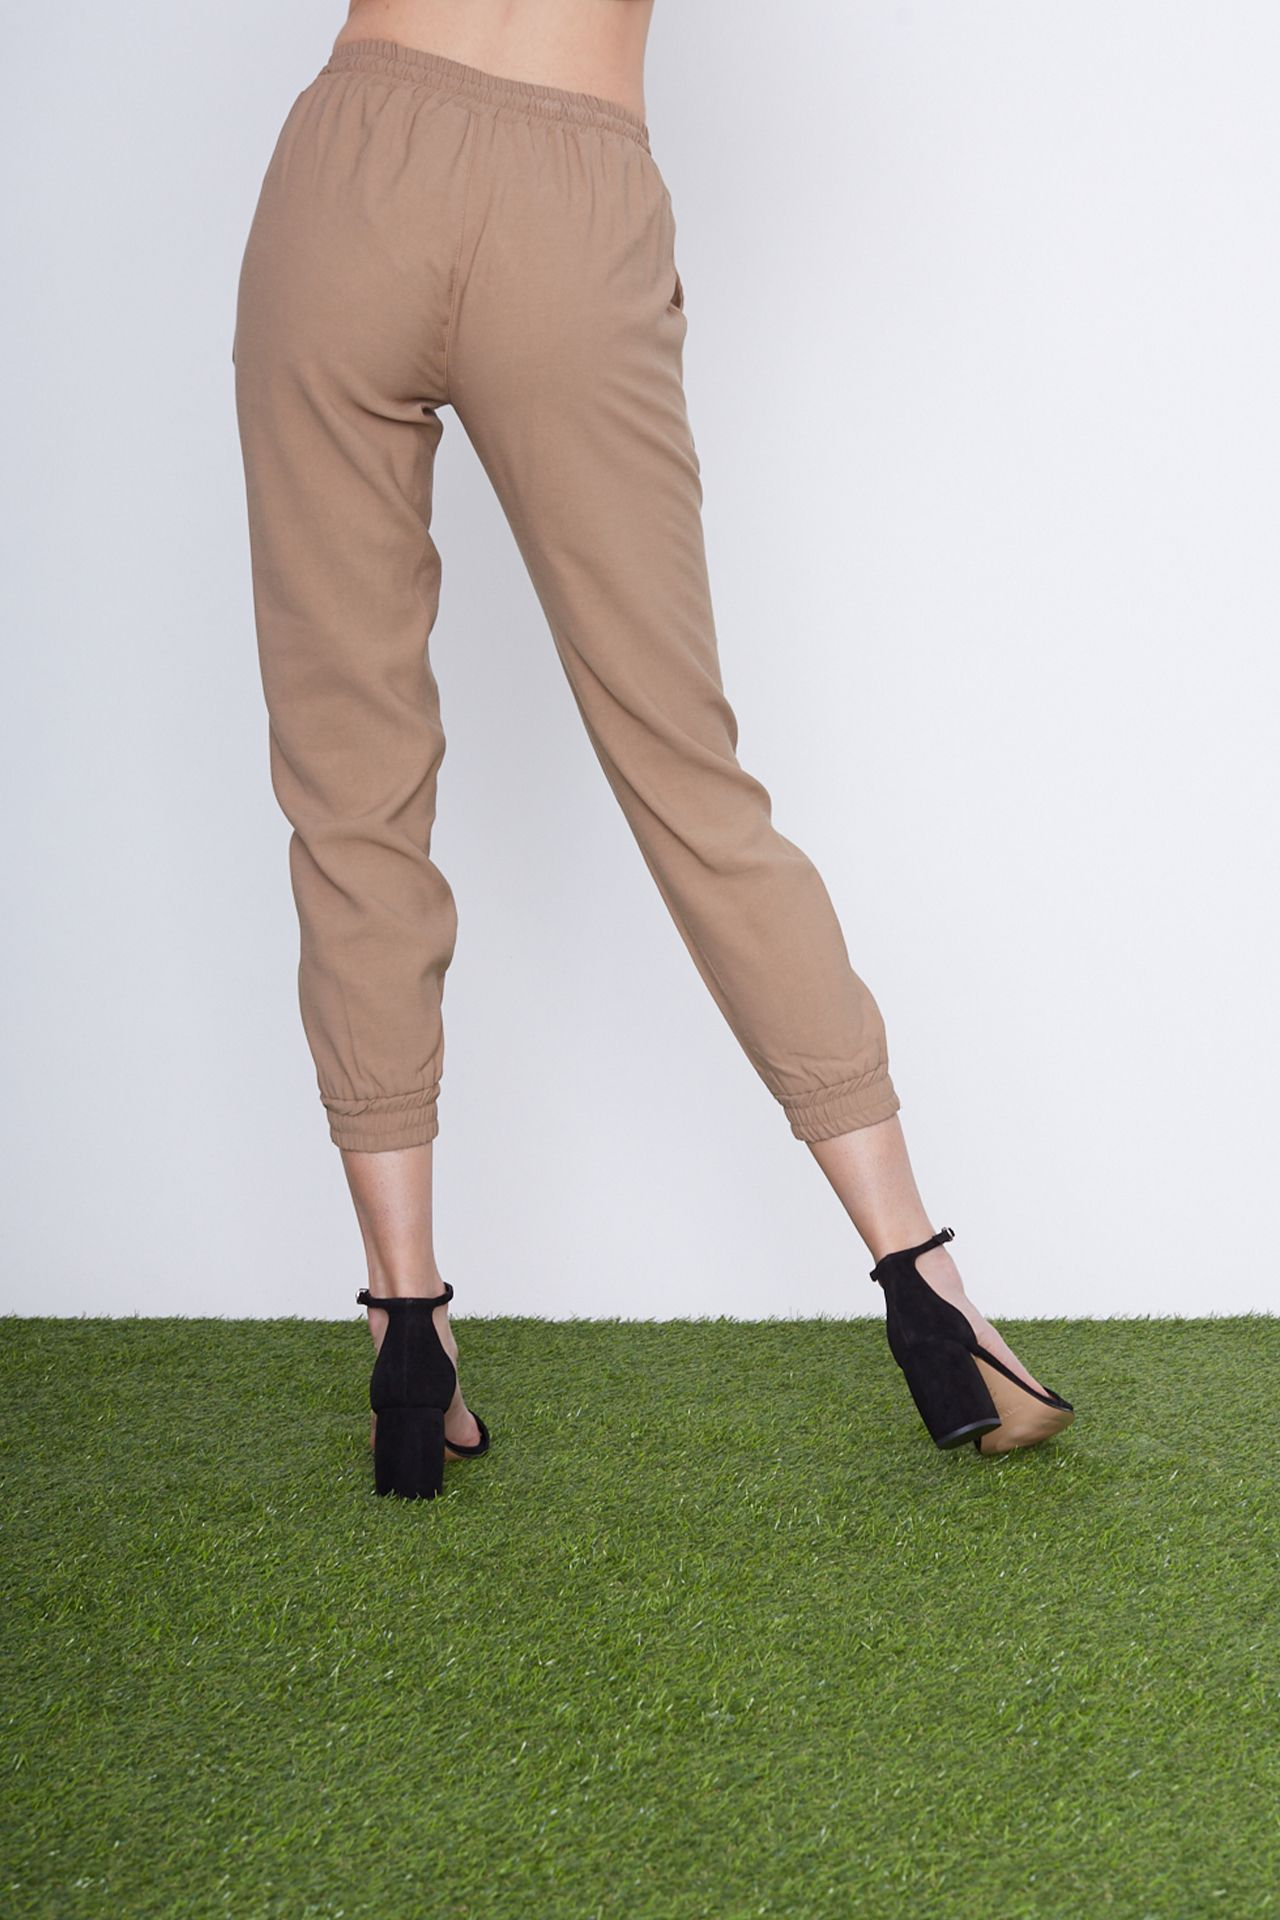 Pantalone coulisse - sabbia Brend